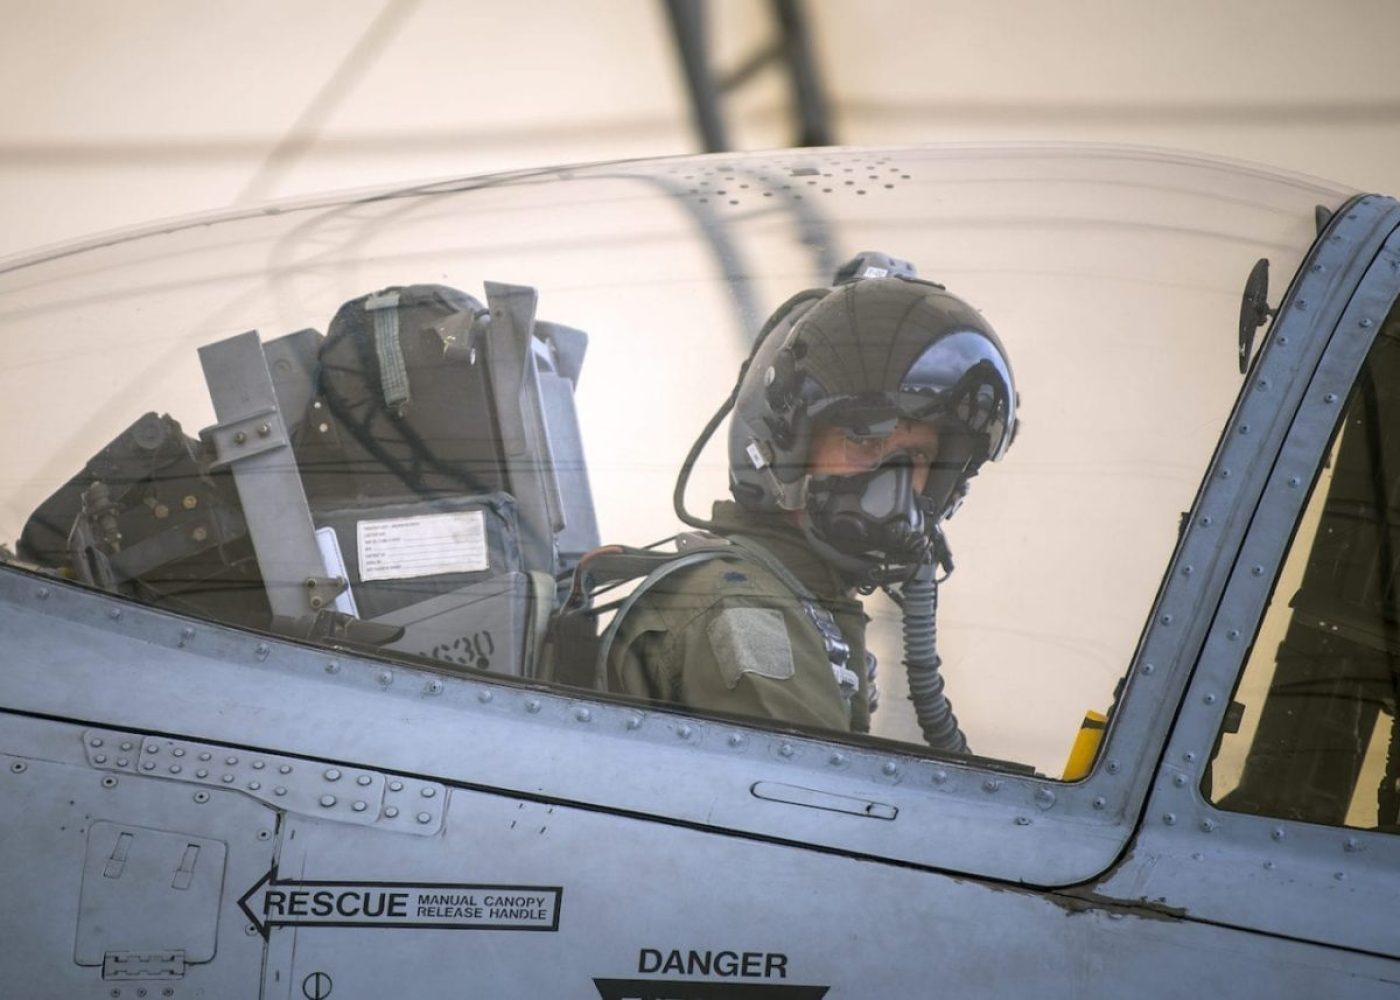 Lt. Col. Jeremy Johnston, 75th Fighter Squadron assistant director of operations, prepares to taxi an A-10C Thunderbolt II during a sortie surge exercise, July 24, 2019, at Moody Air Force Base, Ga. The exercise was conducted to determine Airmen's abilities to perform effectively while generating combat or training sorties at an accelerated rate. Throughout the four-day surge, pilots and maintainers completed 131 sorties spanning approximately 152 flying hours. (U.S. Air Force photo by Airman 1st Class Eugene Oliver)